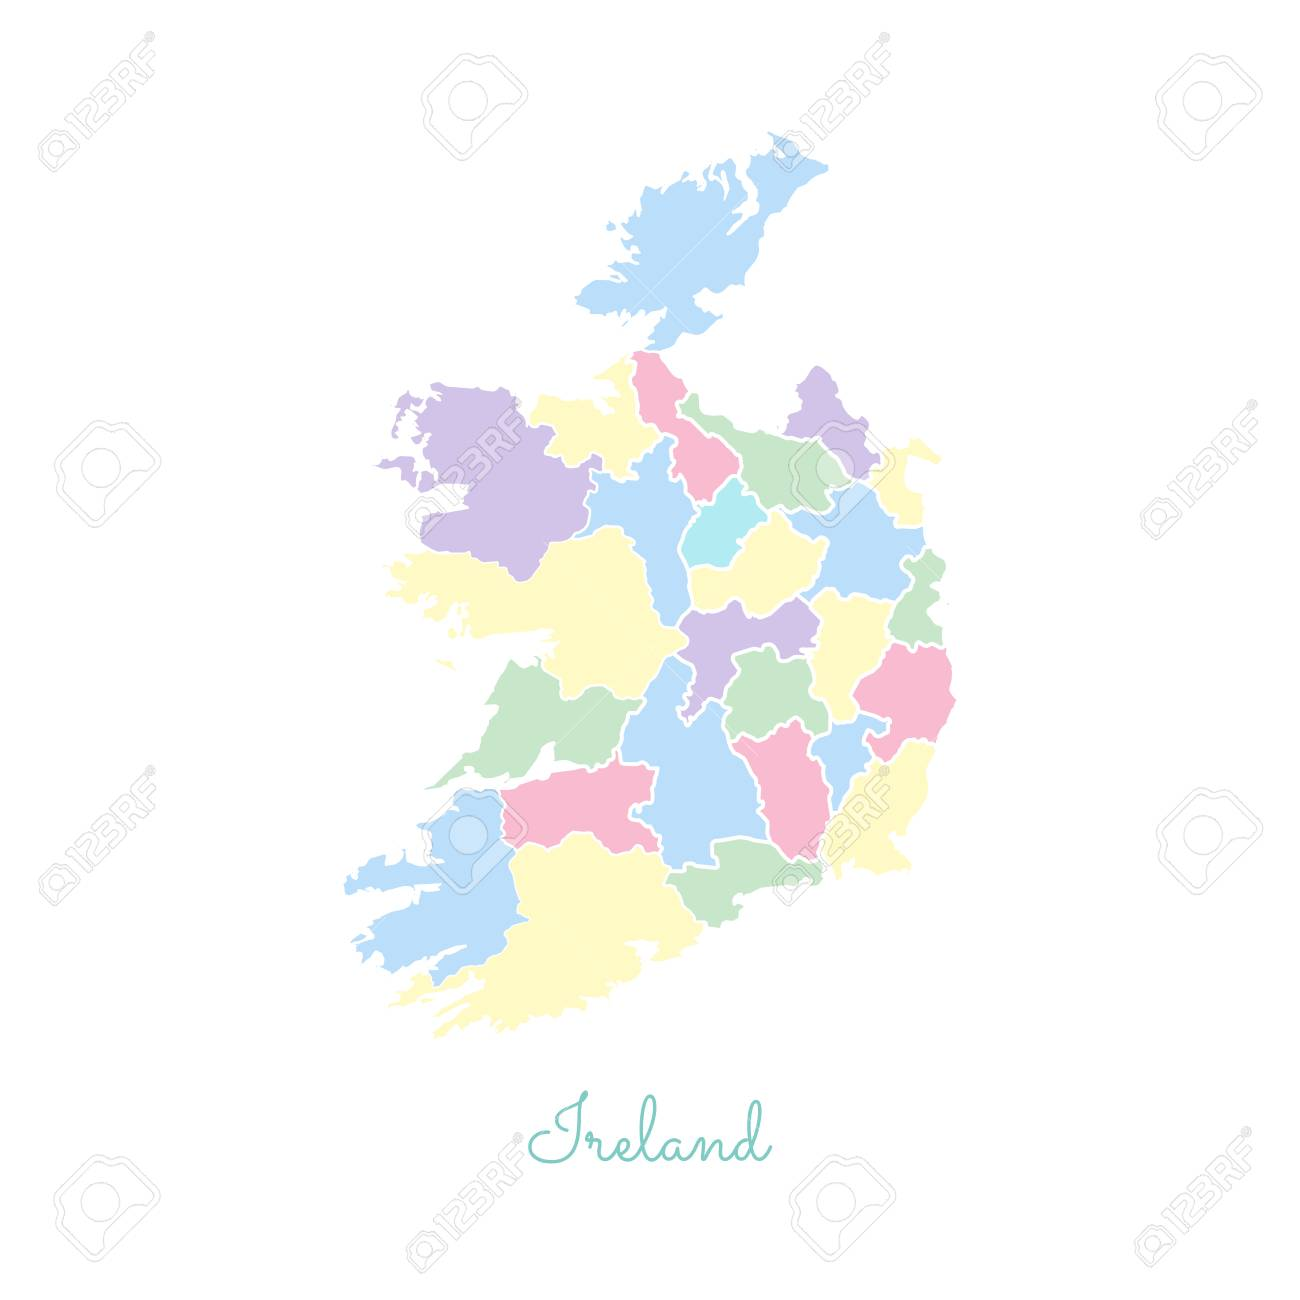 Detailed Map Of Ireland.Ireland Region Map Colorful With White Outline Detailed Map